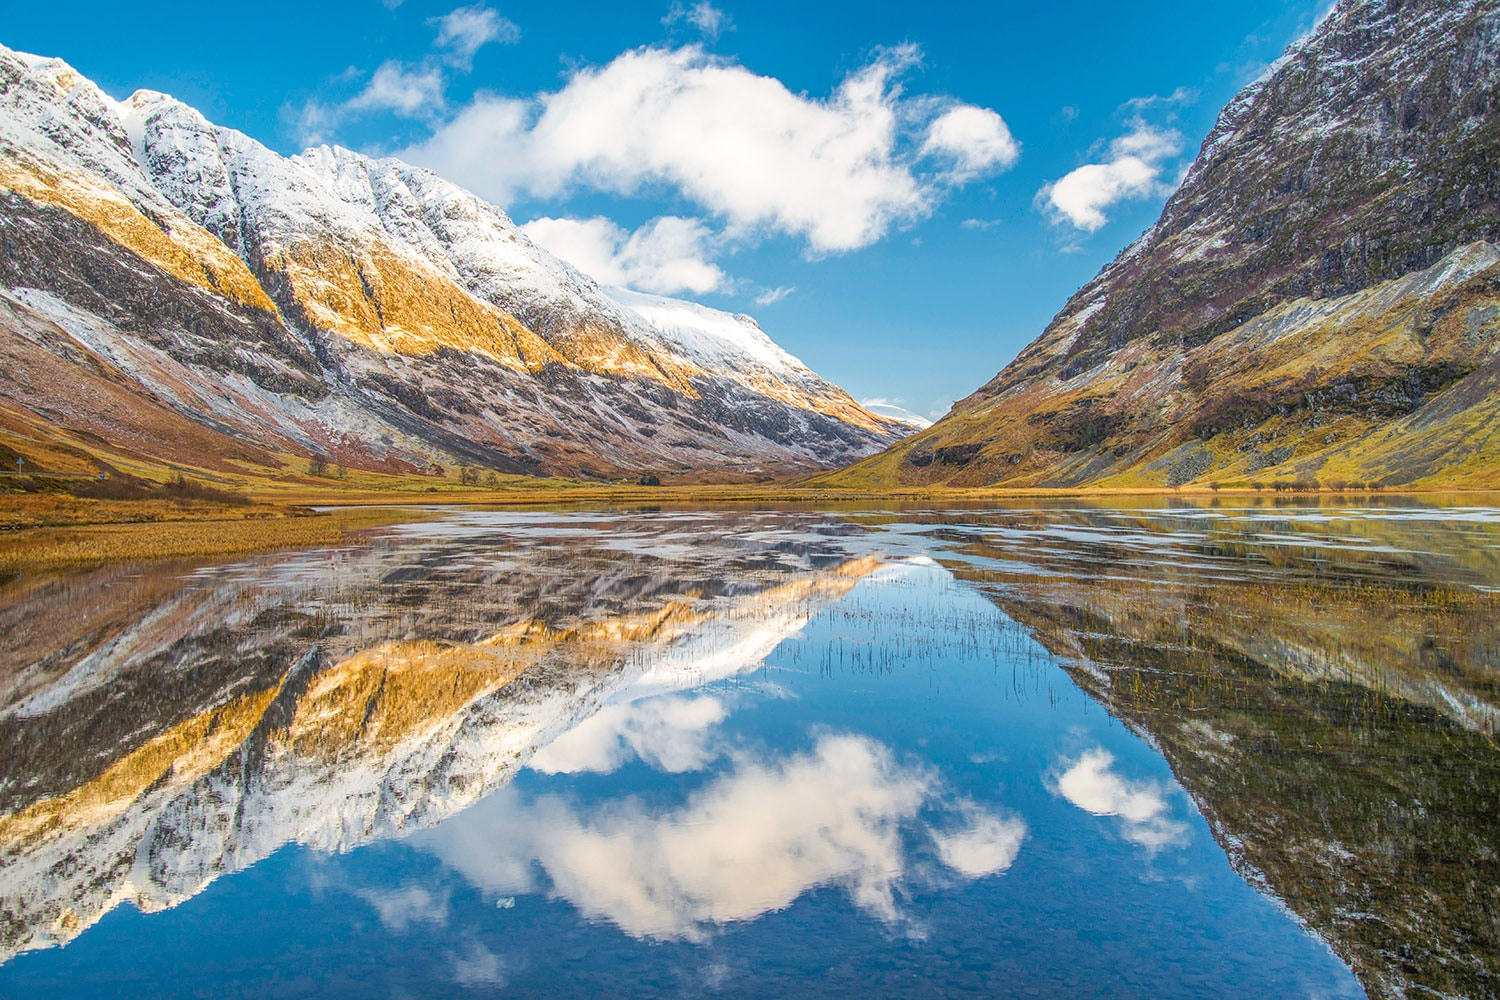 Visit the beautiful Glencoe Mountains on a private tour of Scotland